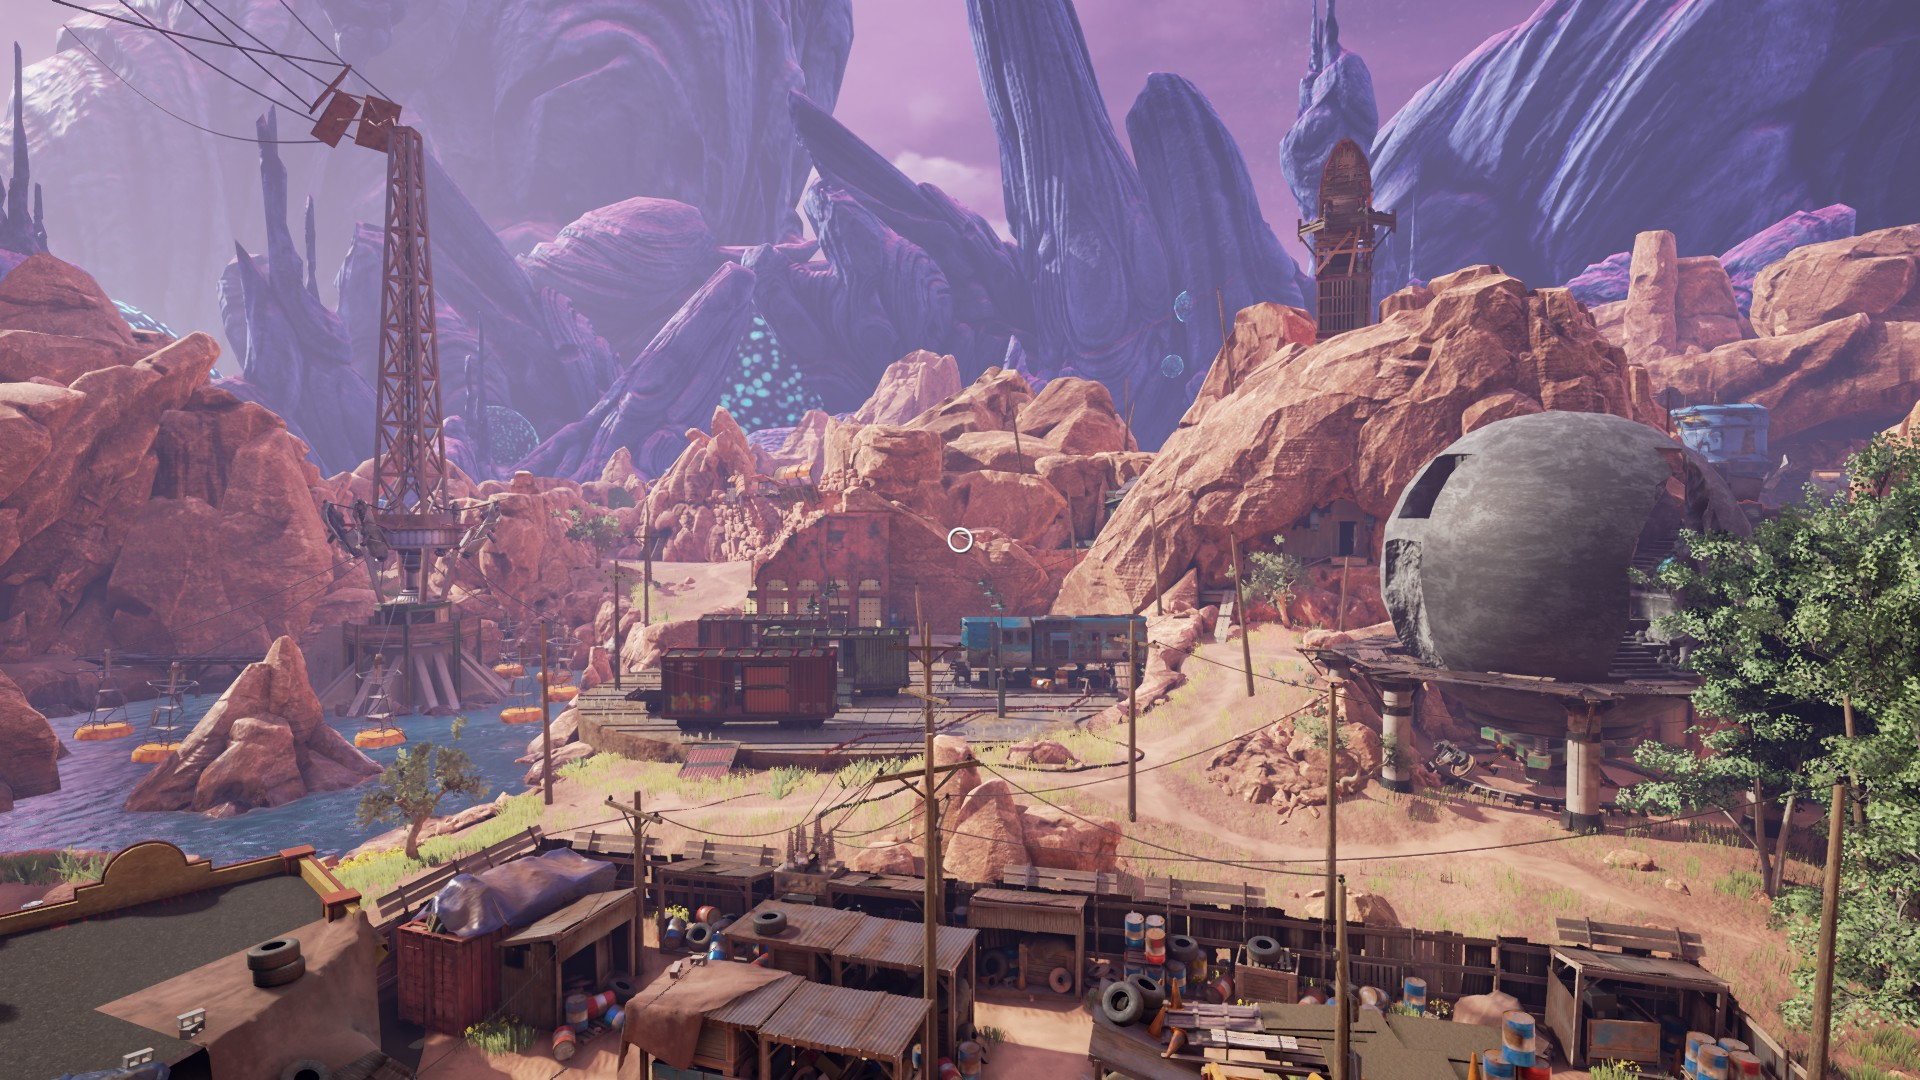 obduction game vr wallpaper 68024